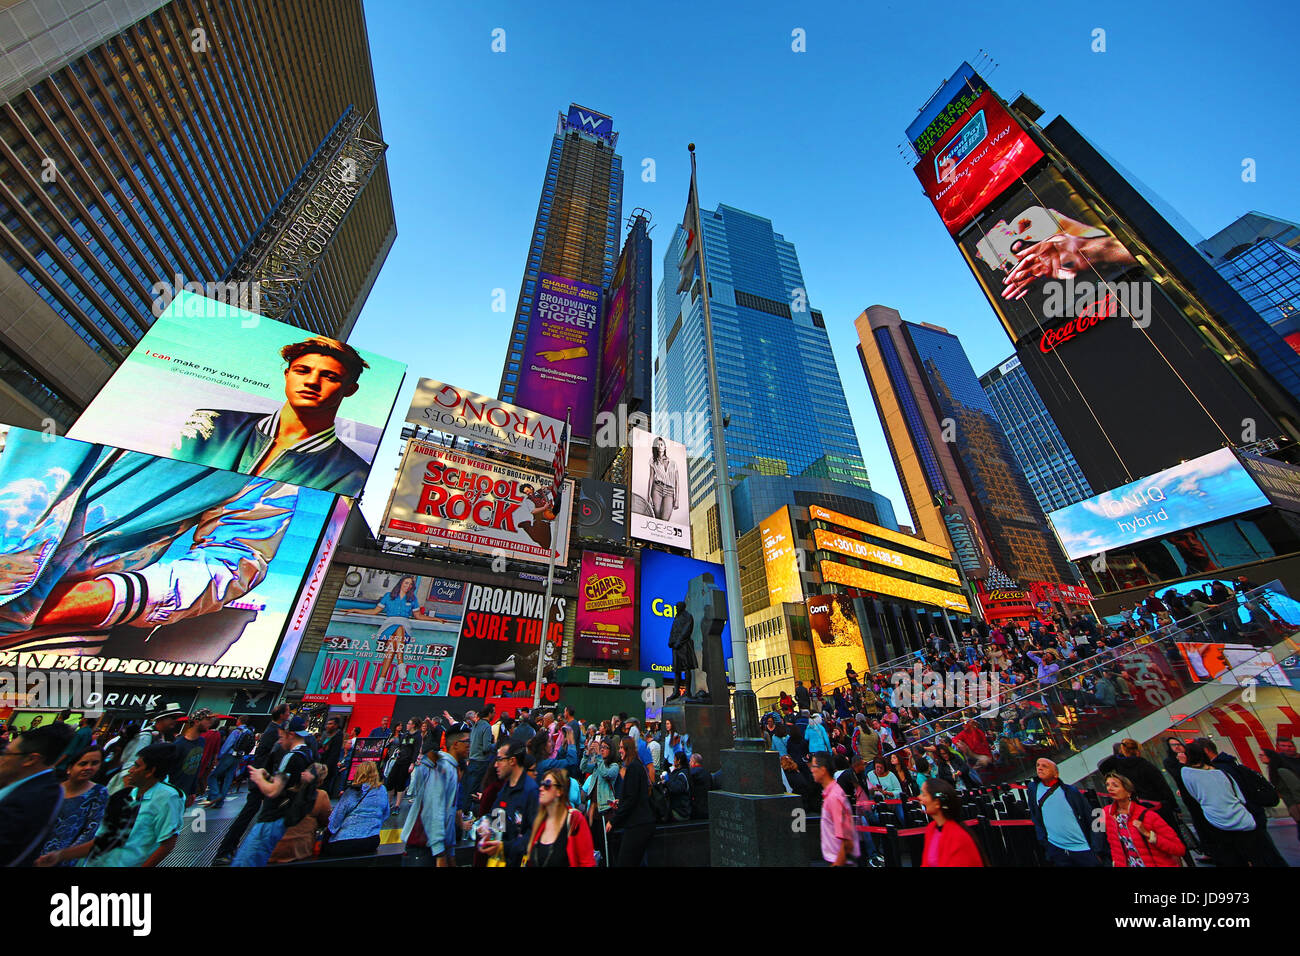 Adverts and advertising in Times Square, New York City, New York, USA - Stock Image